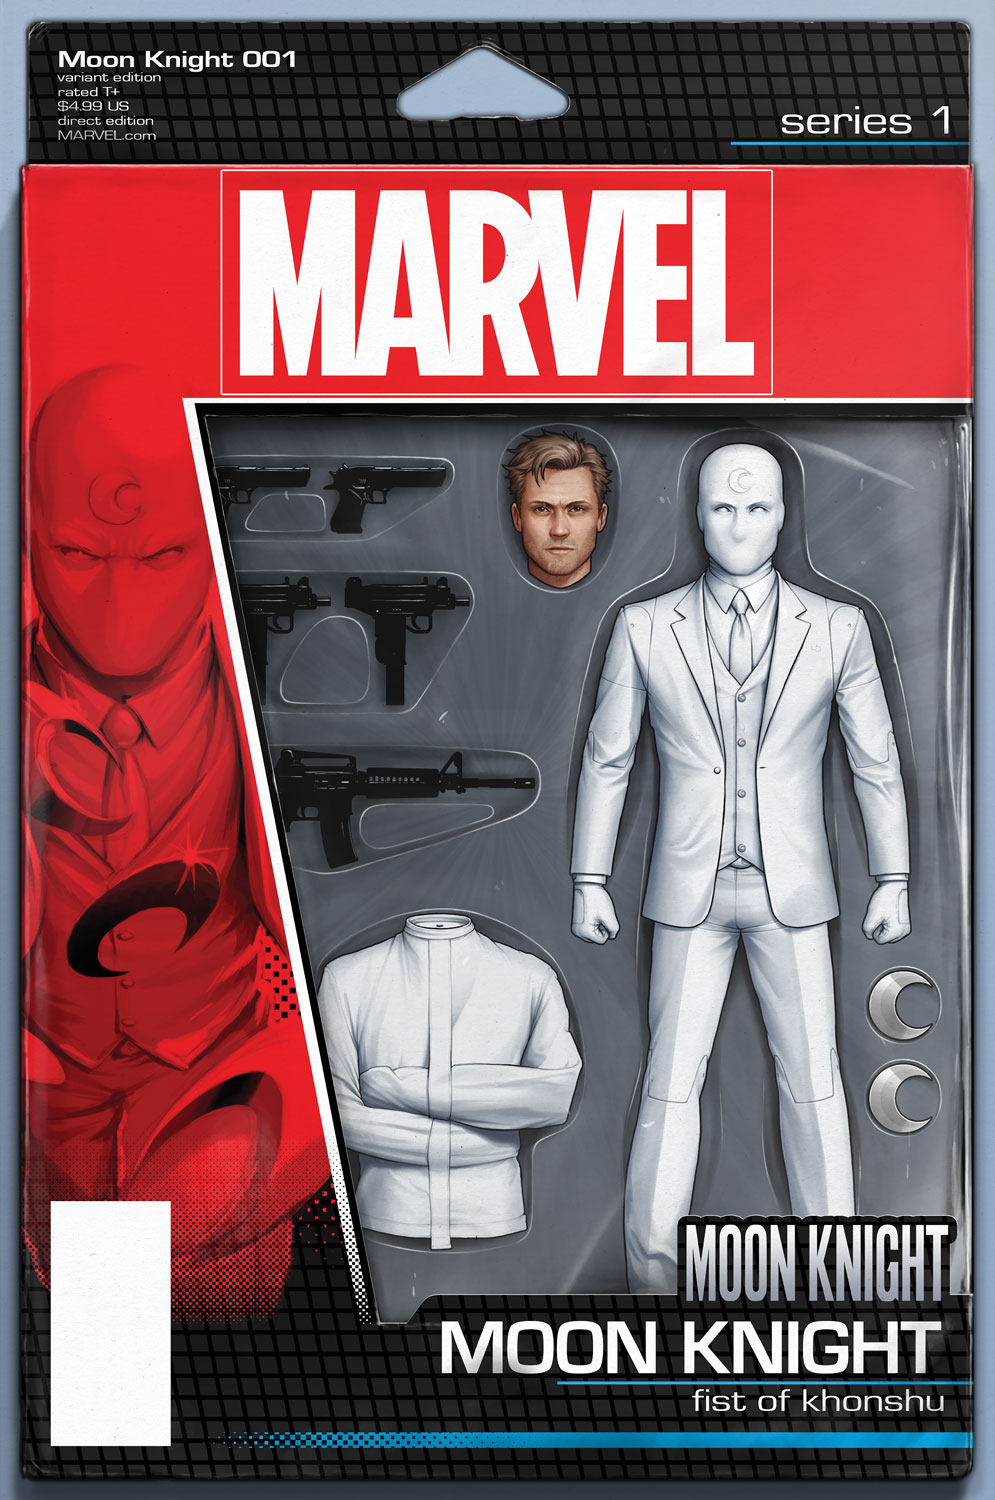 Action Figure Variant by John Tyler Christopher